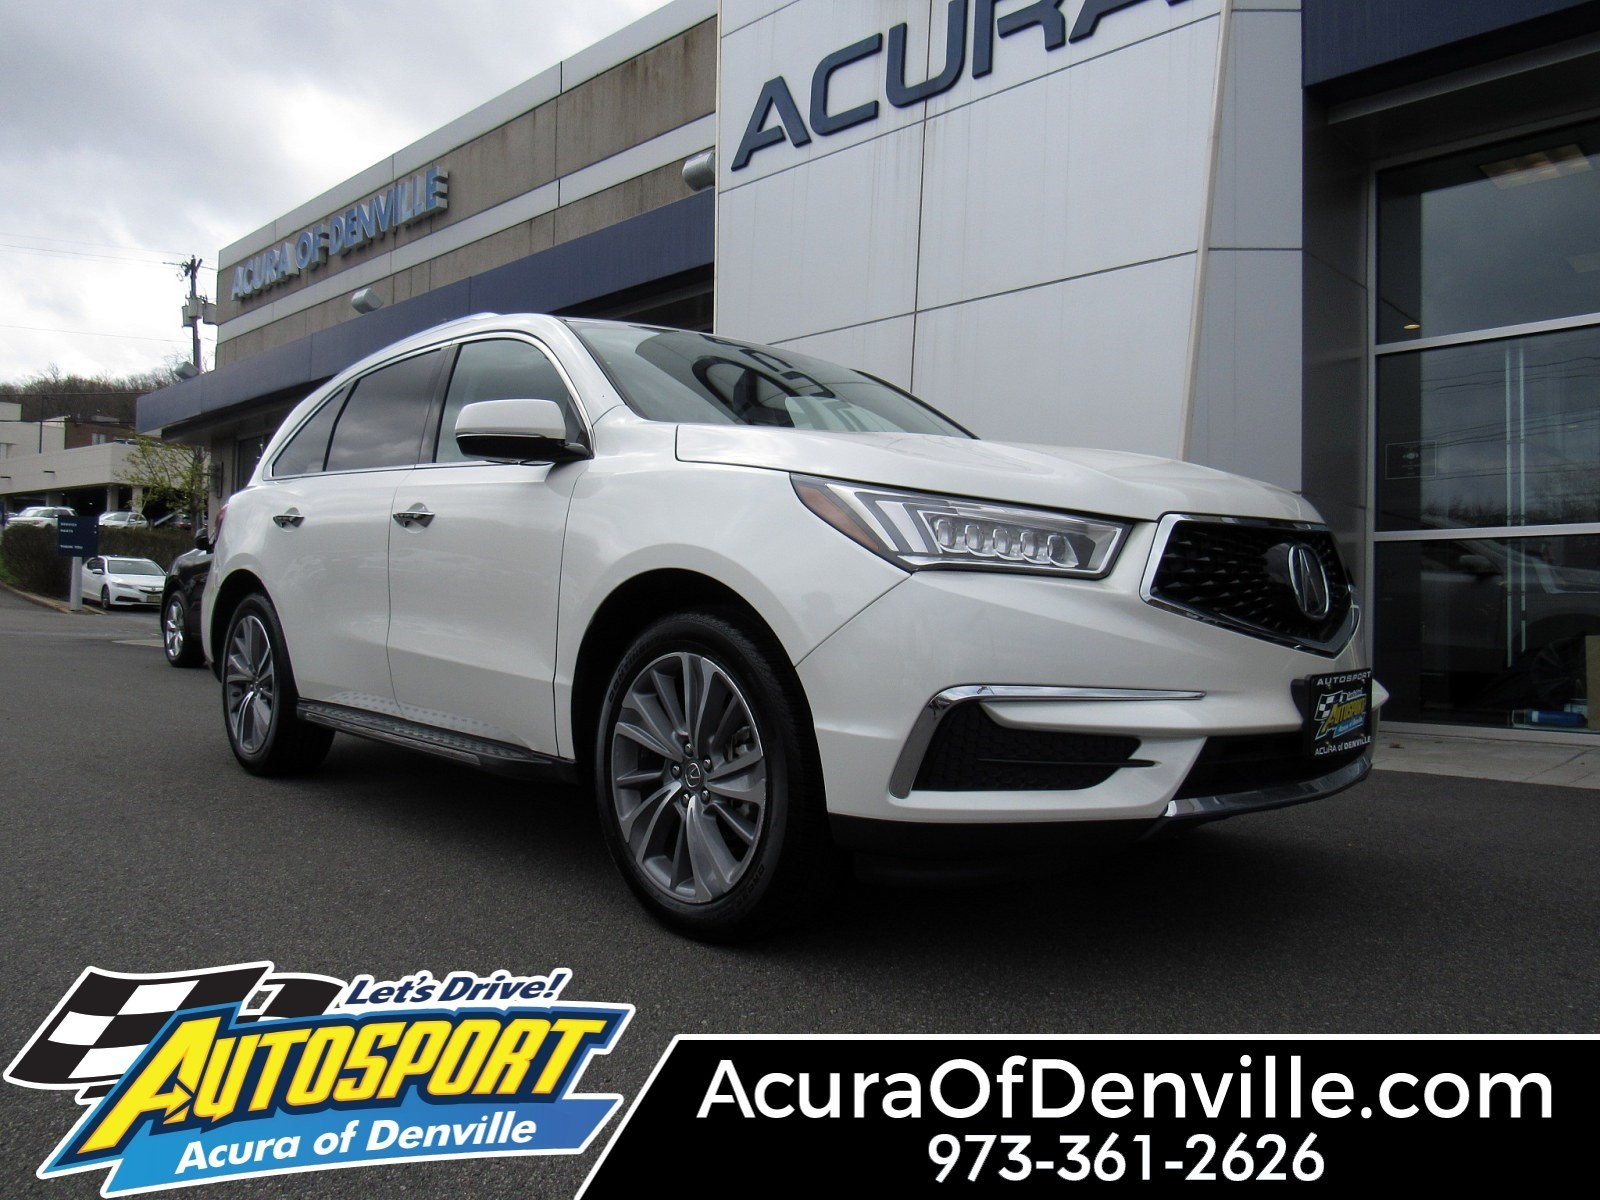 Lindsay Acura Luxury Acura Certified Seoinventory